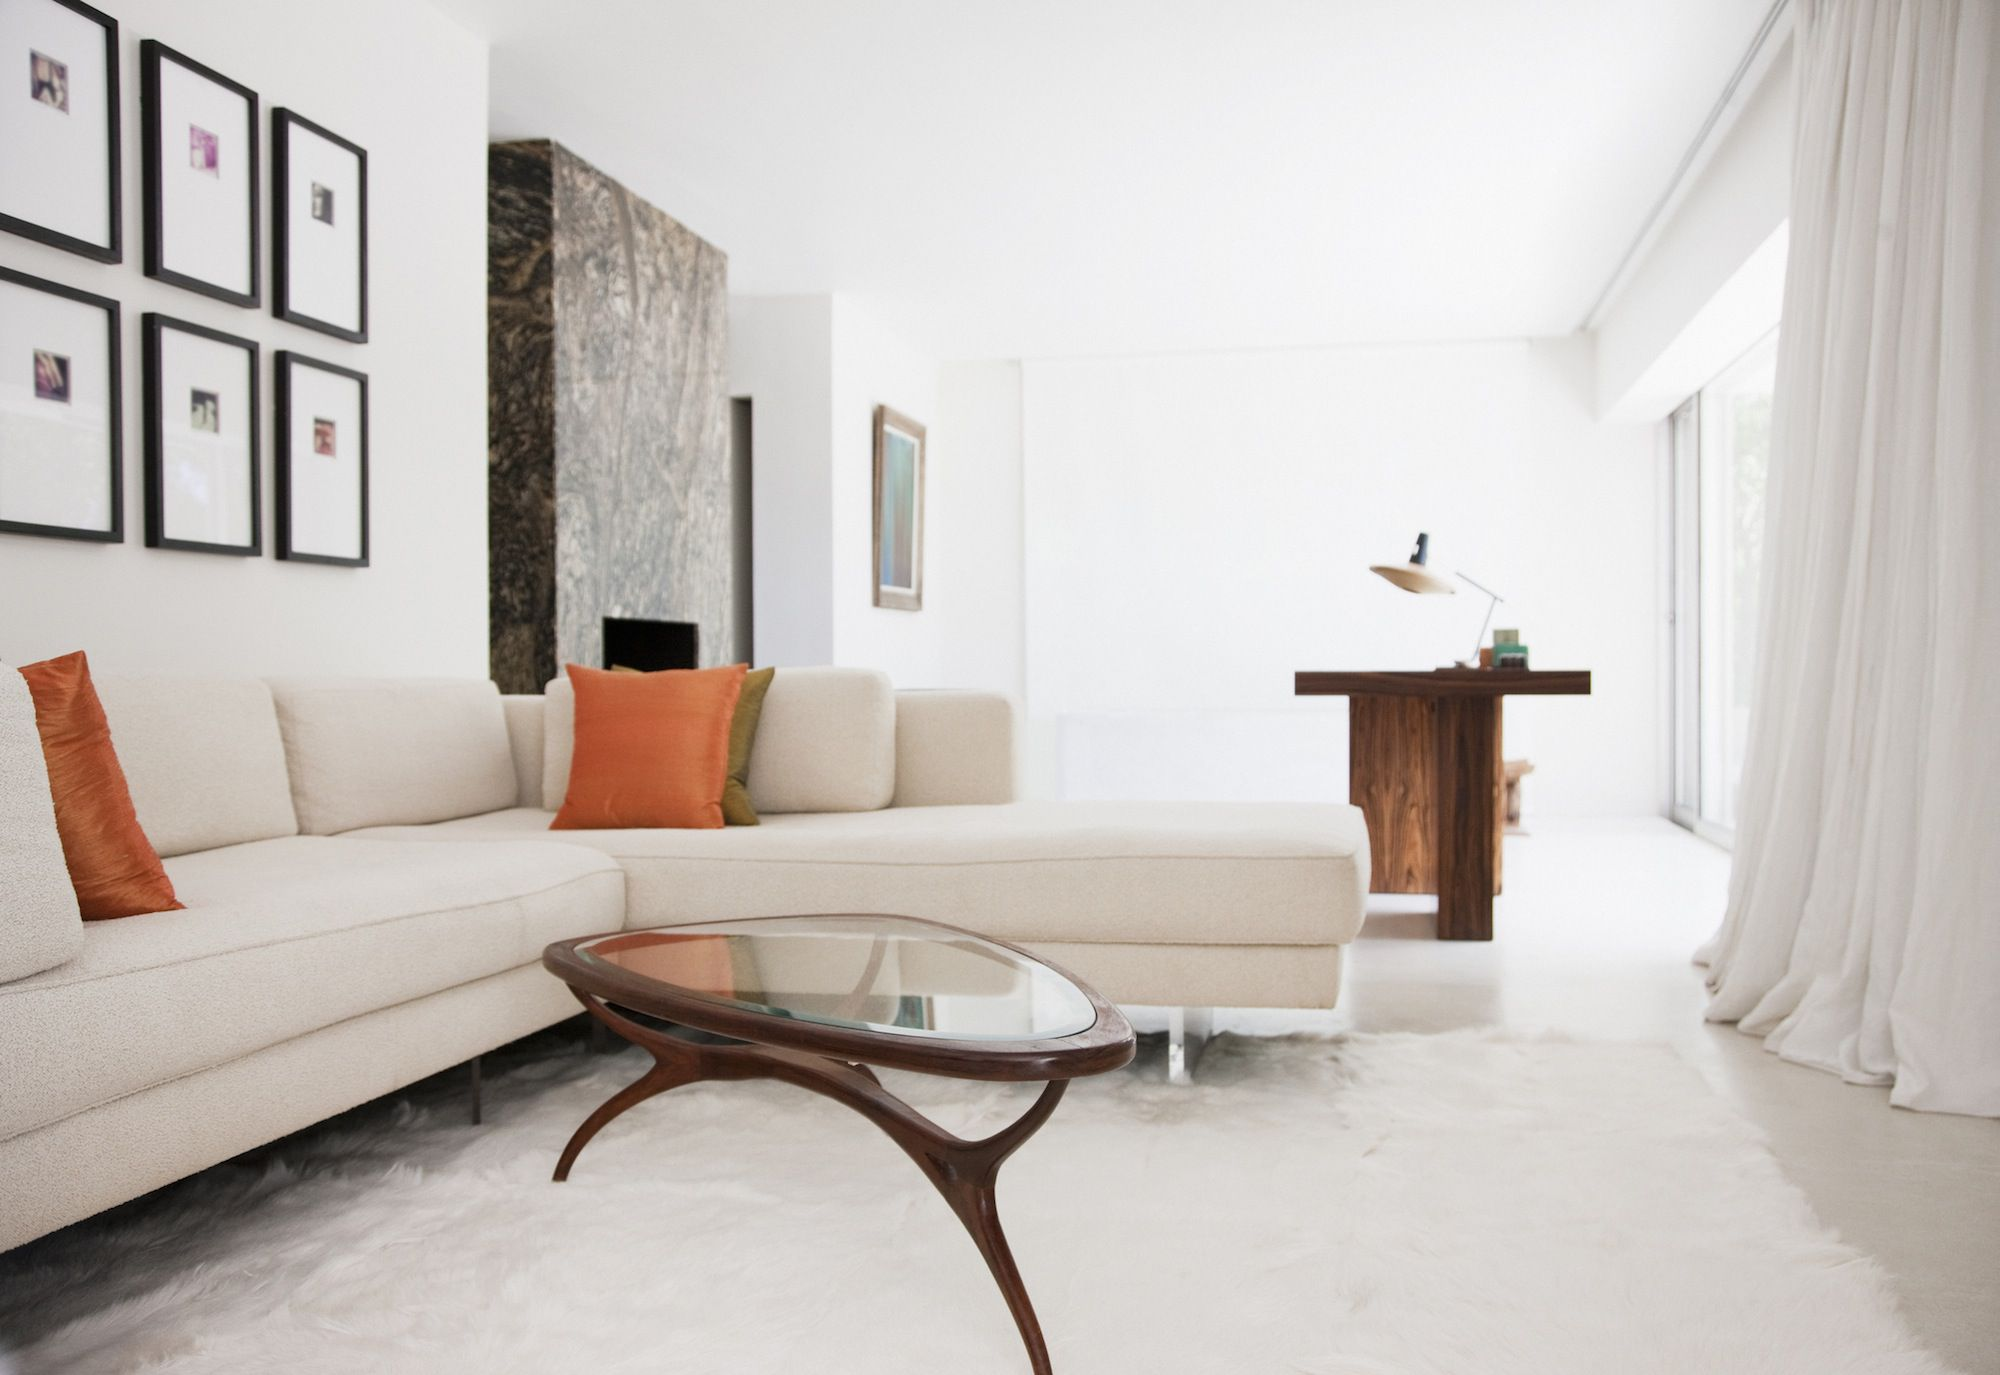 ways use accent furniture your home getty dining table pieces pottery barn folding small round mirror orange bedside lamp target shoe storage sofa for bedroom italian marble